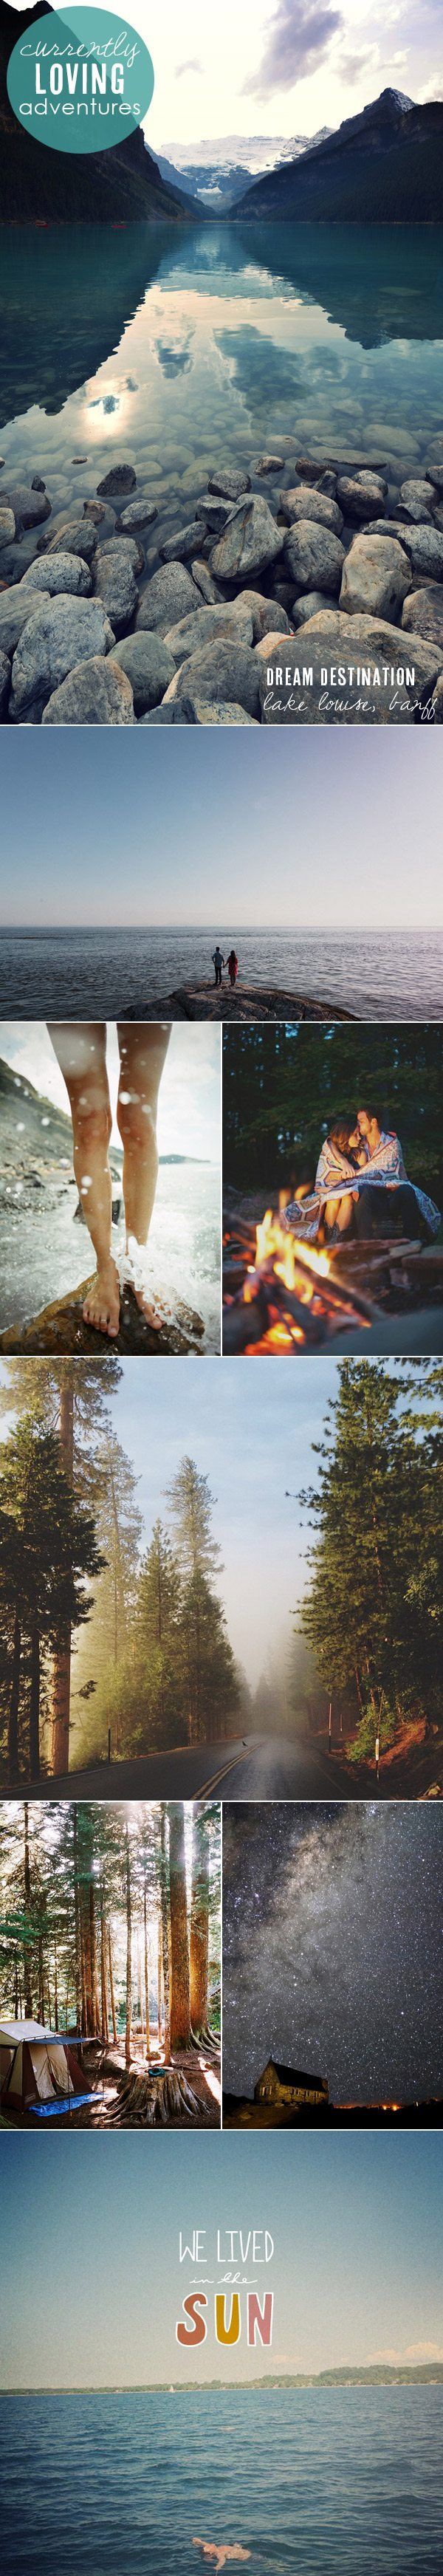 Amazing road trip inspiration from The Sweetest Occasion